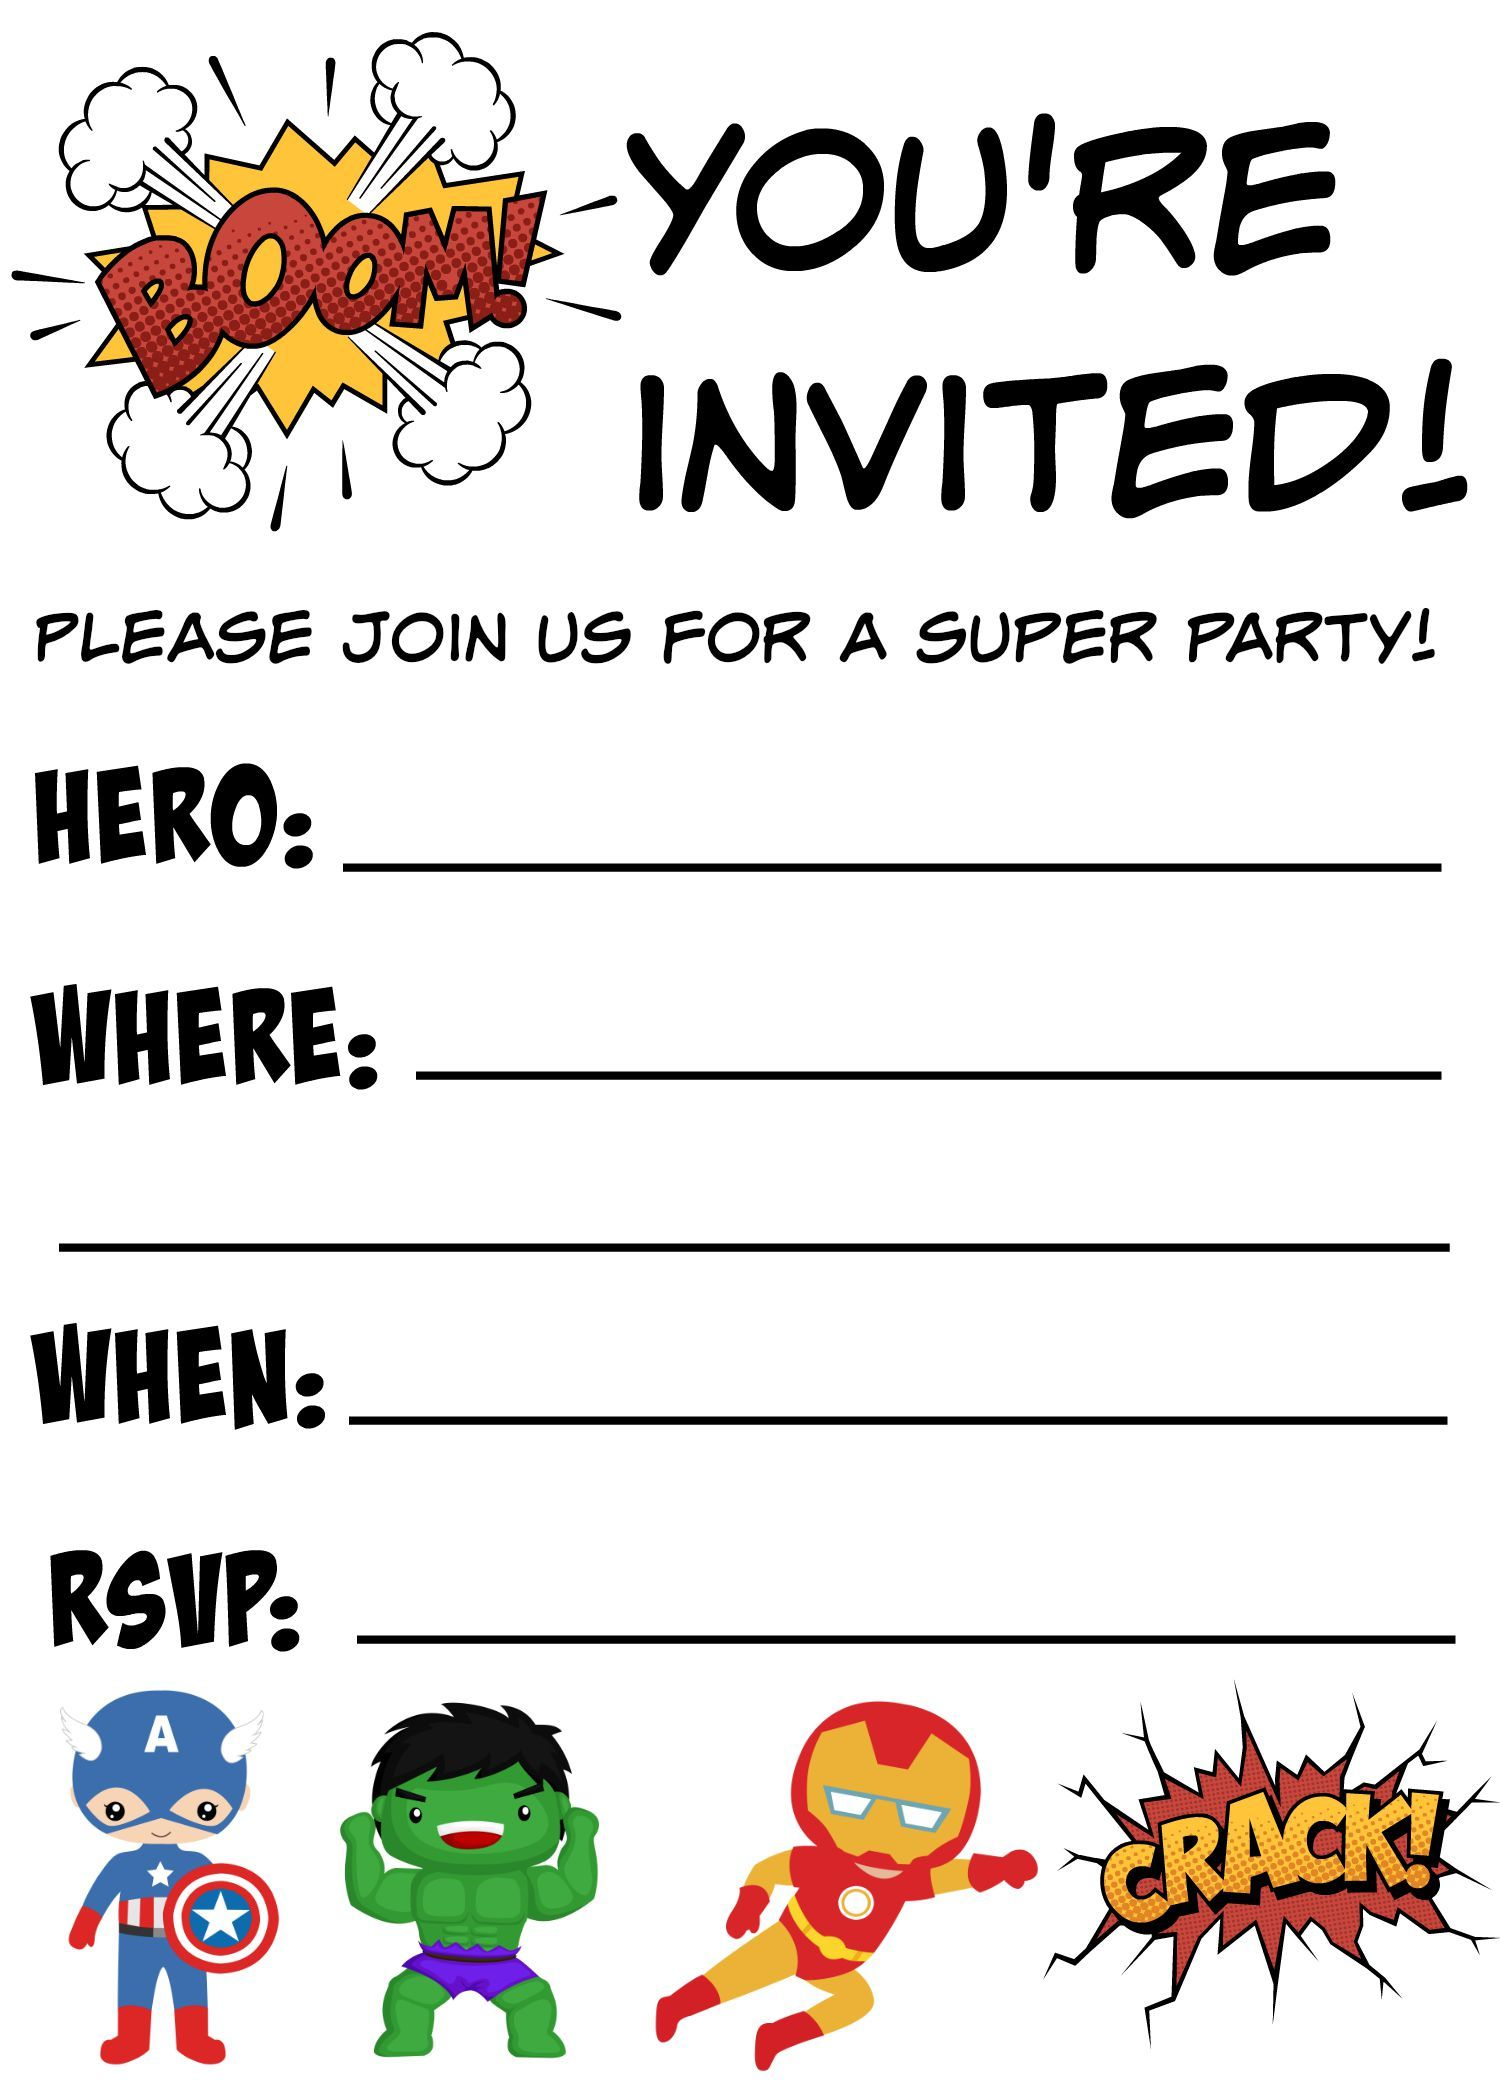 graphic regarding Free Printable Superhero Birthday Cards named Totally free Printable Superhero Birthday Invites birthdays